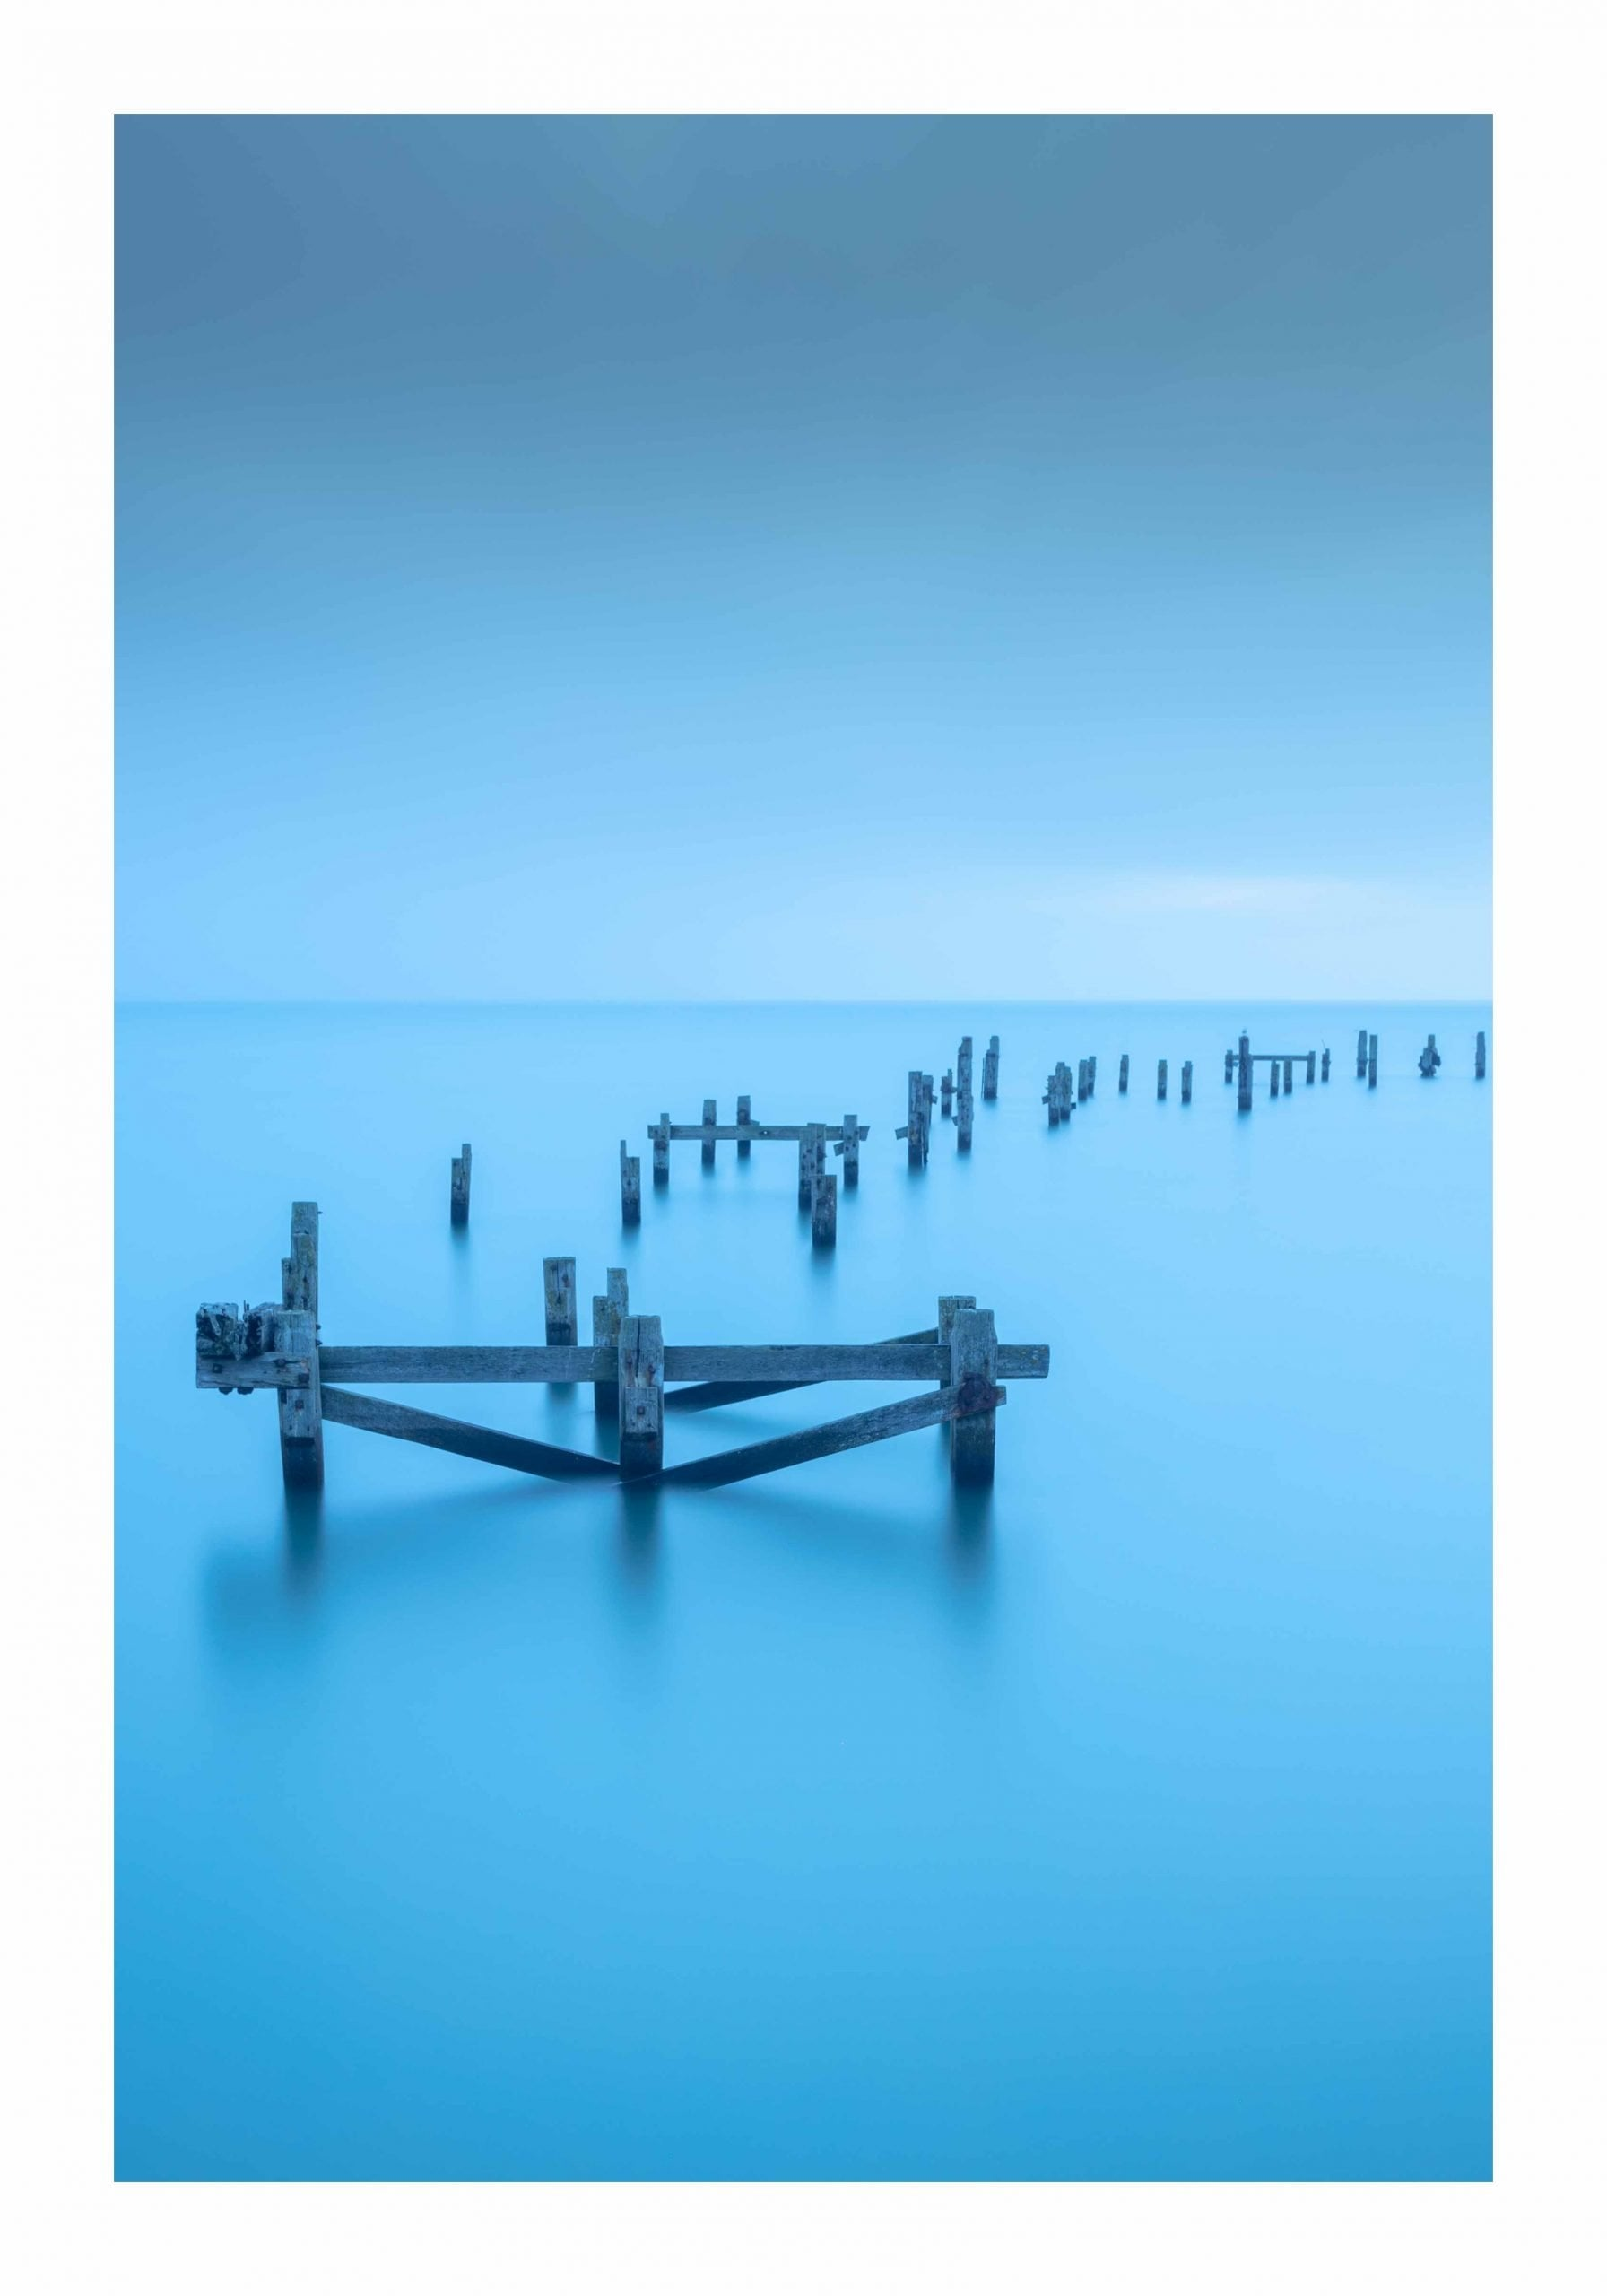 swanage old pier blue hour